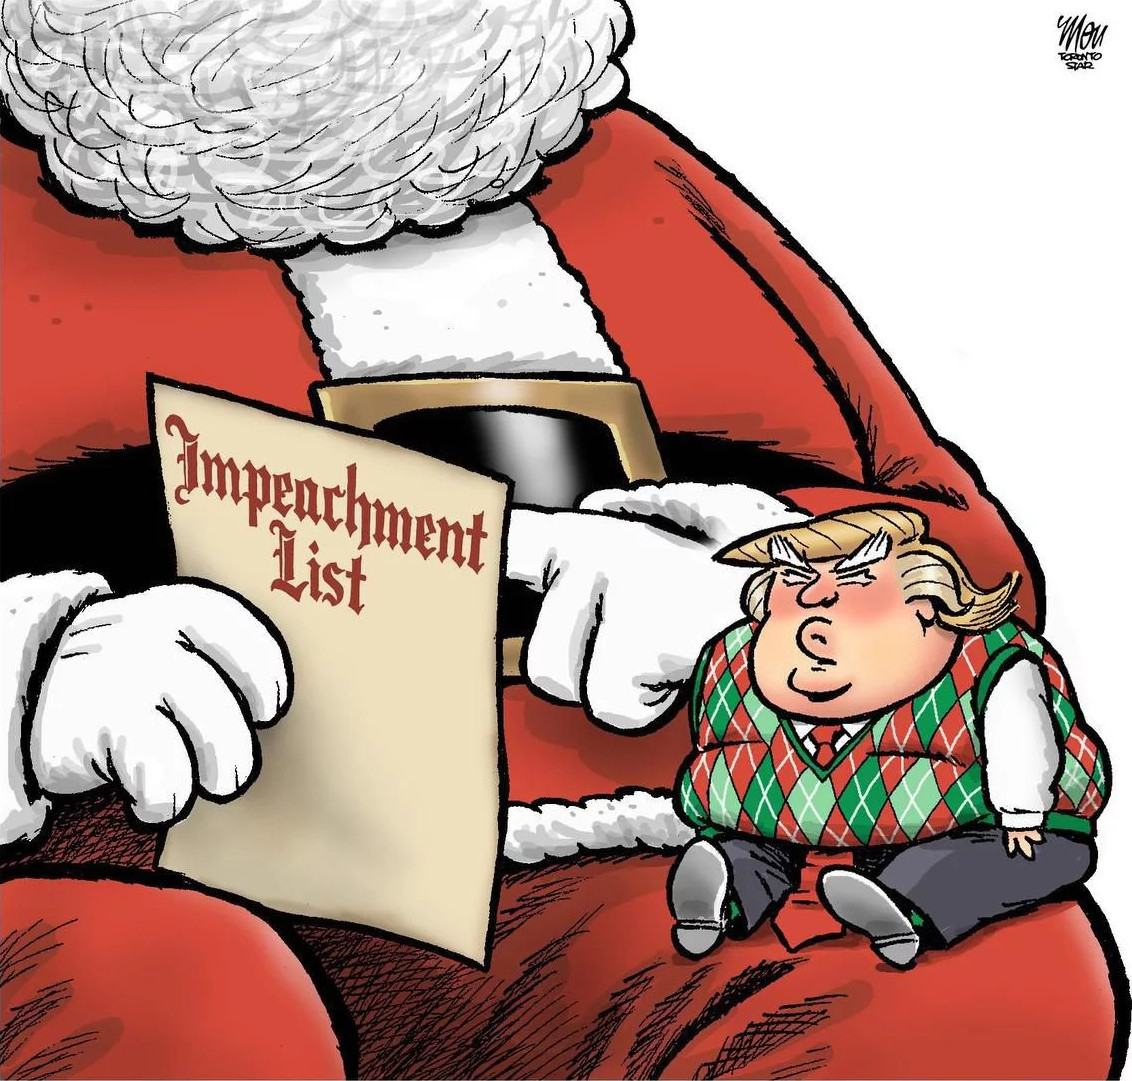 moudakis CARTOON #FUCKTATD TRUMP #impeachment list santa baby fucktard clown #magarine #fck nzs